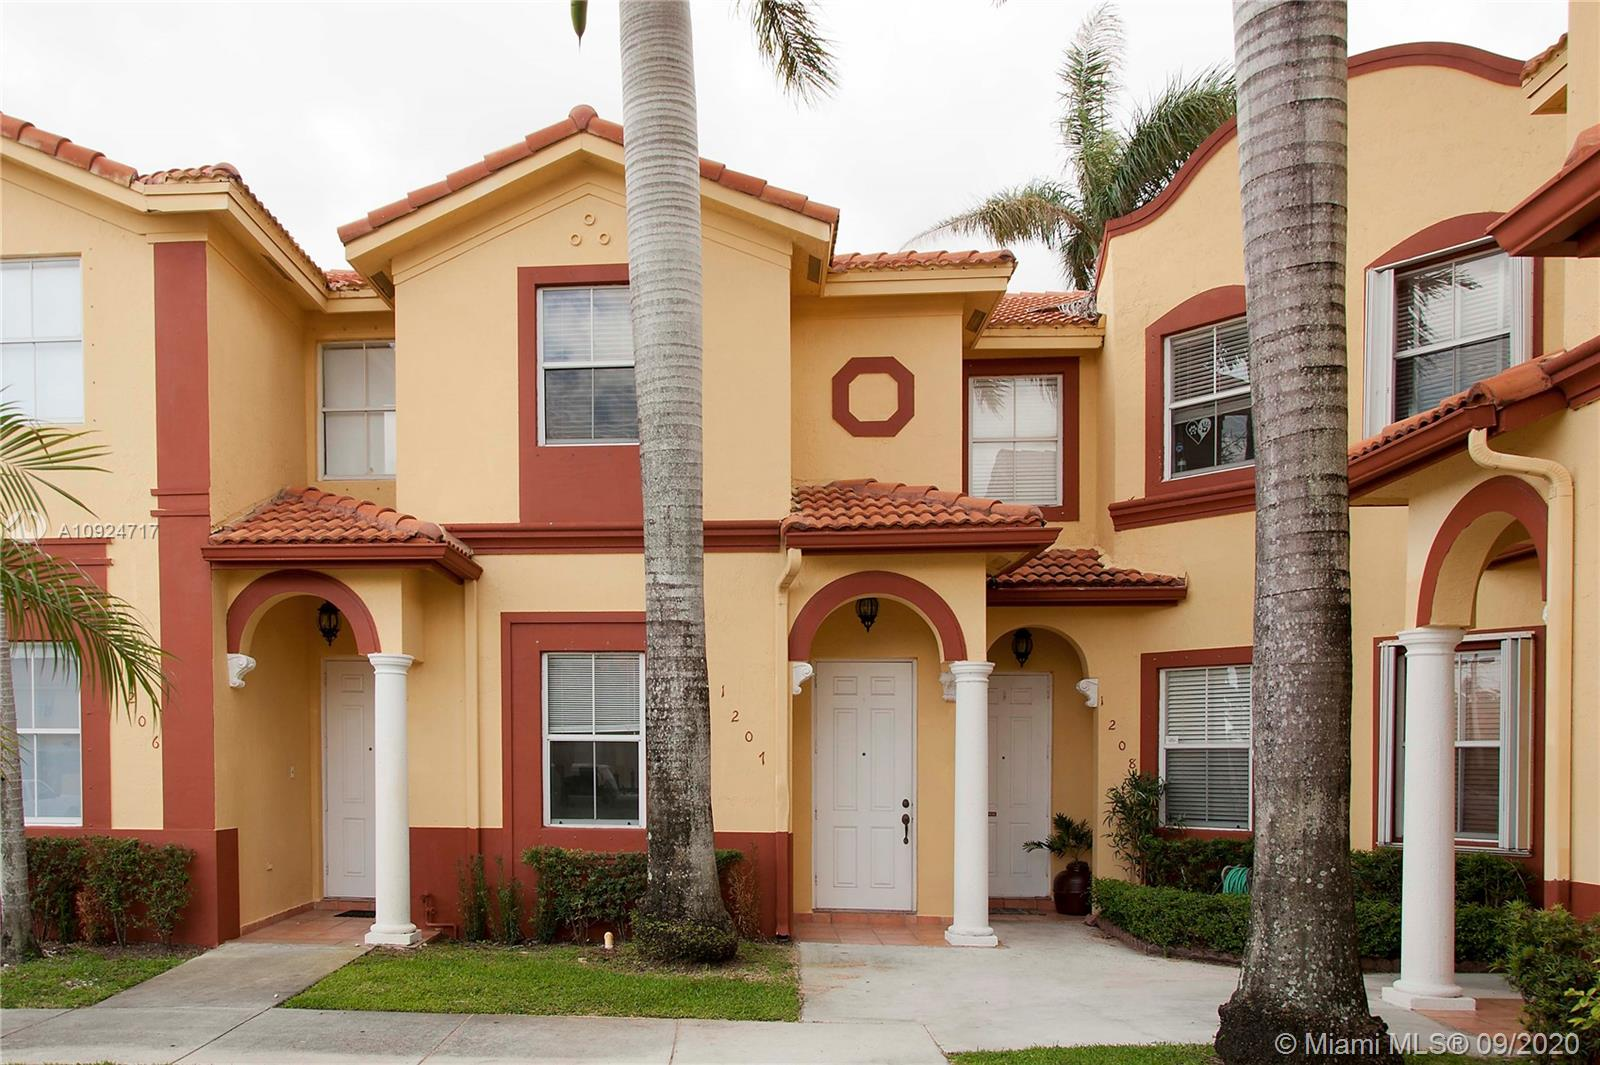 Cozy and comfortable townhouse in desirable Doral. Unit has Washer and Dryer in Unit. Tile throughout first floor and wooden floor throughout second floor. Small Fenced Patio. One (1) Parking Space. Costa Linda is a well maintained gated community with a lovely pool area. Close to all major shopping and dining areas. No Pets Allowed as per the HOA.Please click on showing assist or call/text listing agent within 24 hours notice. TENANT OCCUPIED until Oct 5.